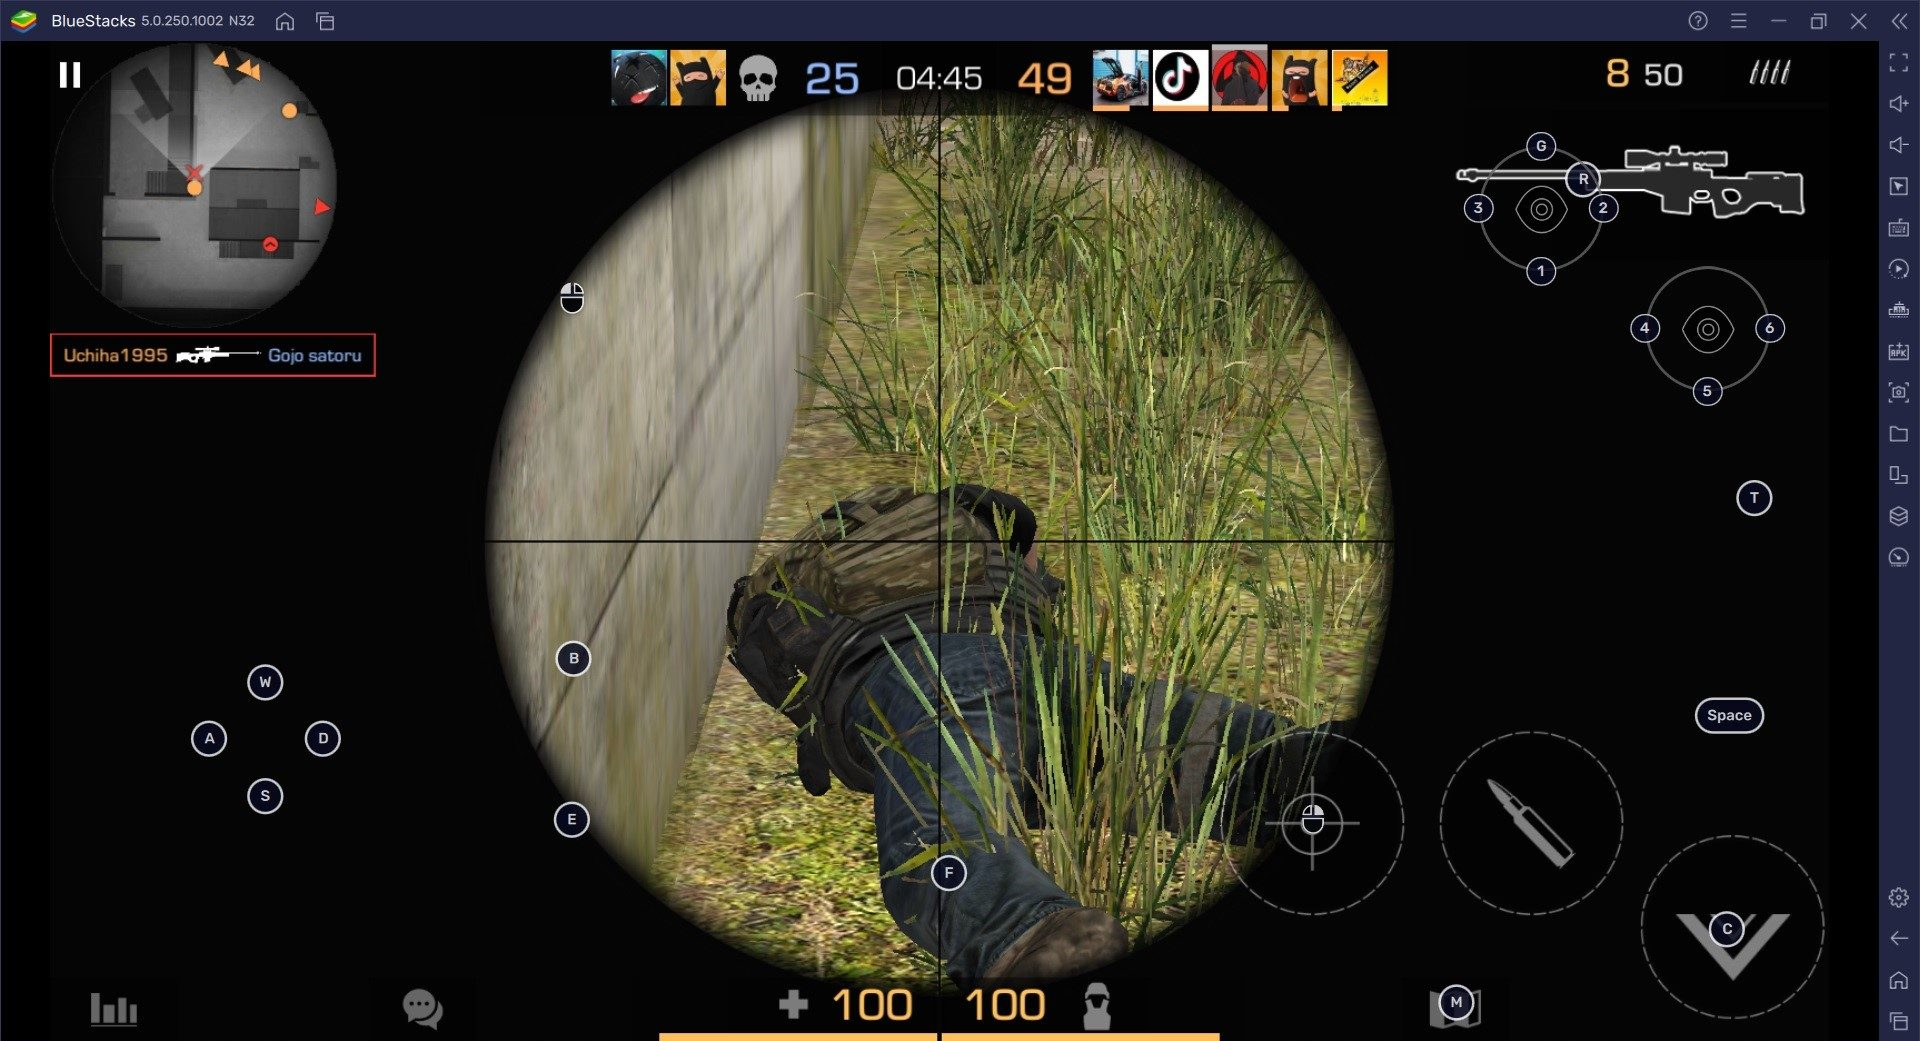 Standoff 2 Guide for All Players: Tips to Make Every Round Count